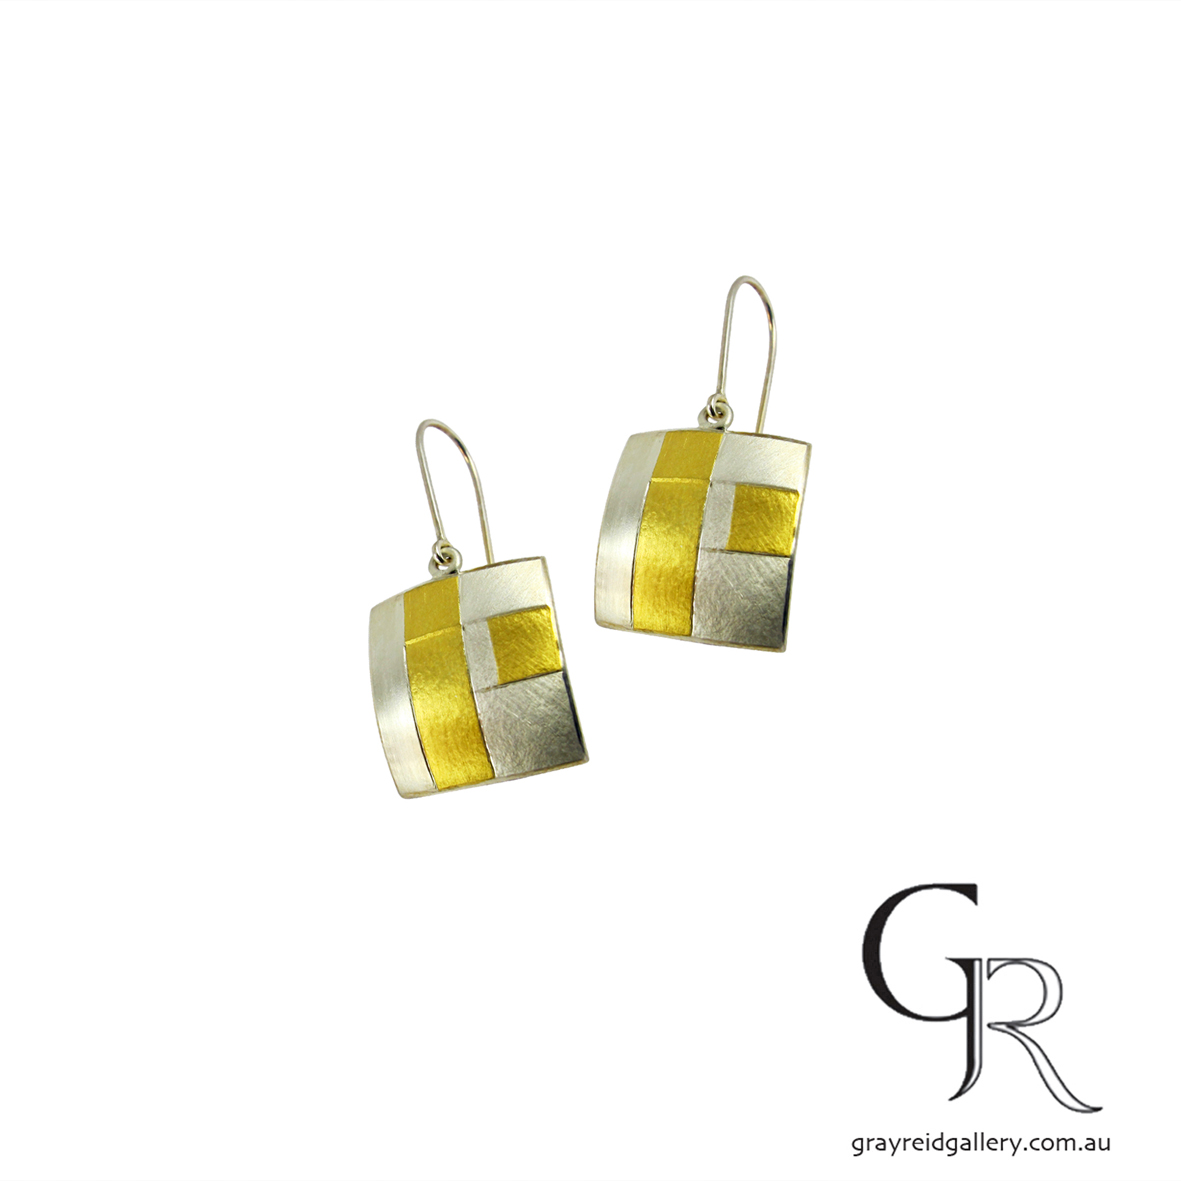 contemporary earrings by Monica Szwaja Gray Reid Gallery Melbounre 30.jpg